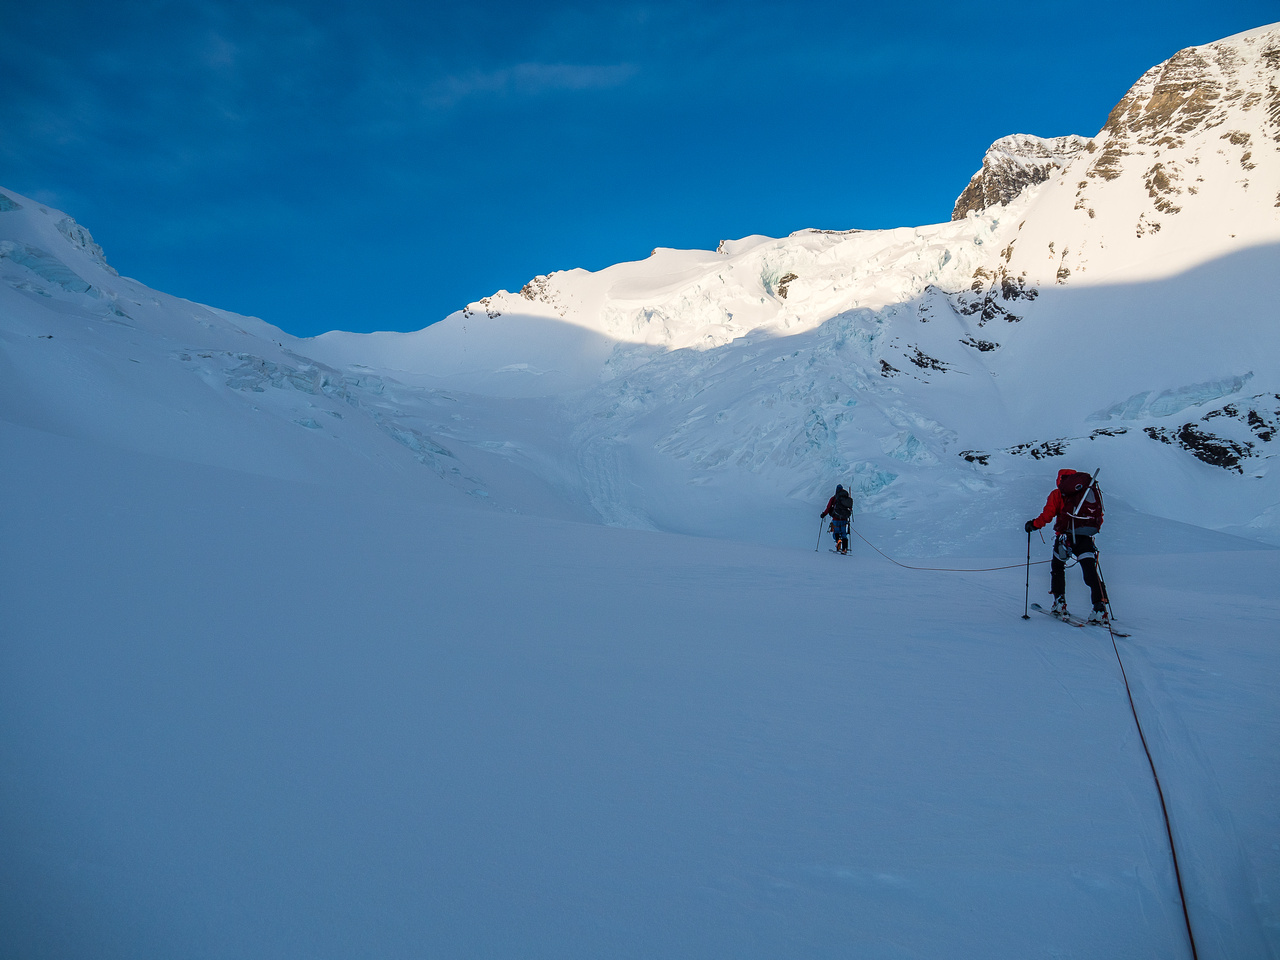 Skiing below the Mousetrap. We'll go left here to work our way through crevasses and seracs visible at upper left.